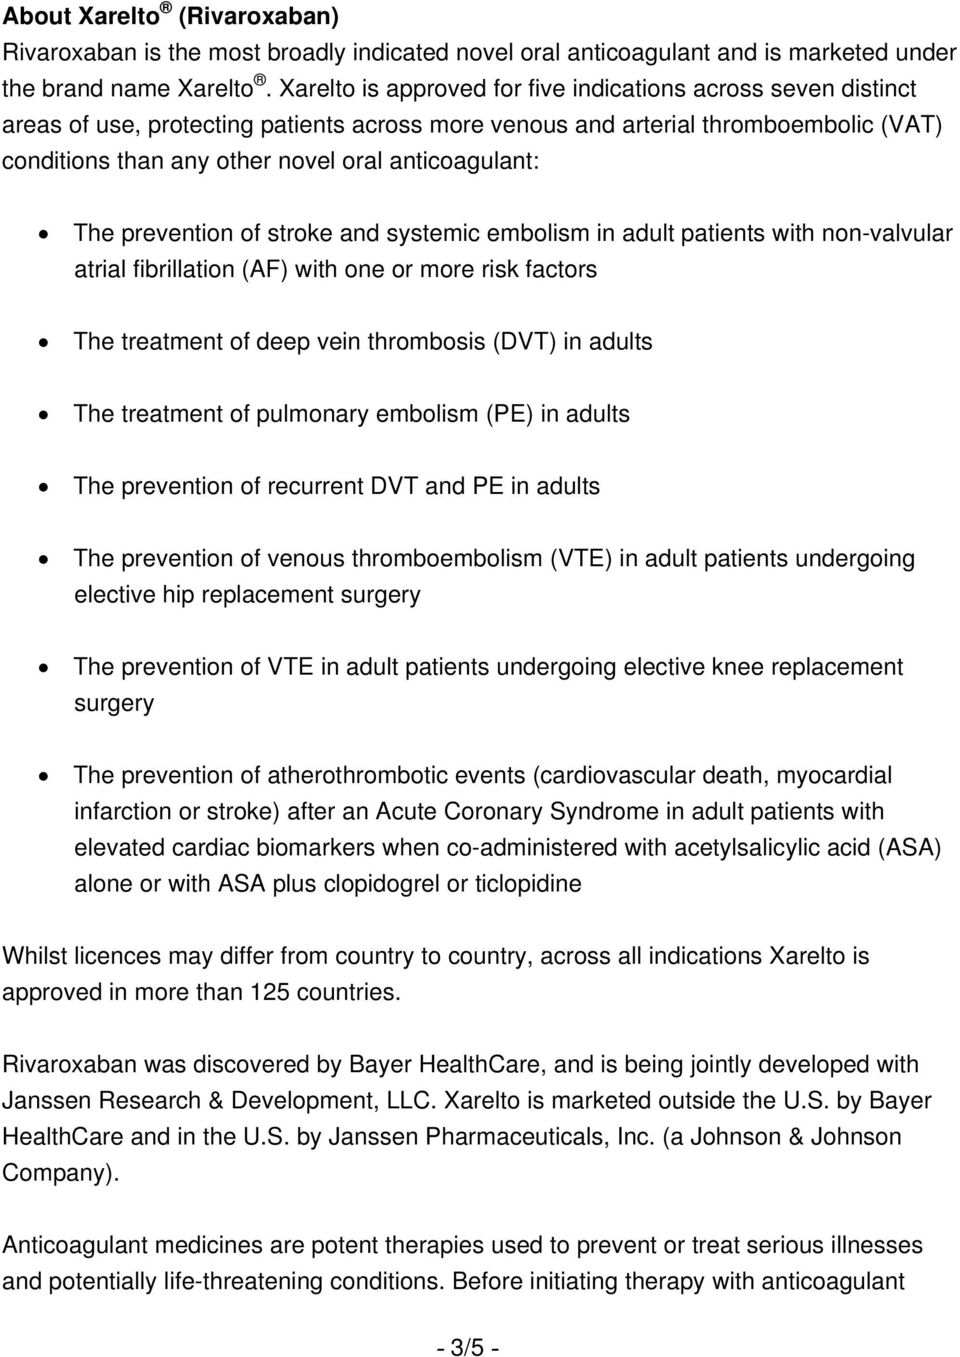 anticoagulant: The prevention of stroke and systemic embolism in adult patients with non-valvular atrial fibrillation (AF) with one or more risk factors The treatment of deep vein thrombosis (DVT) in